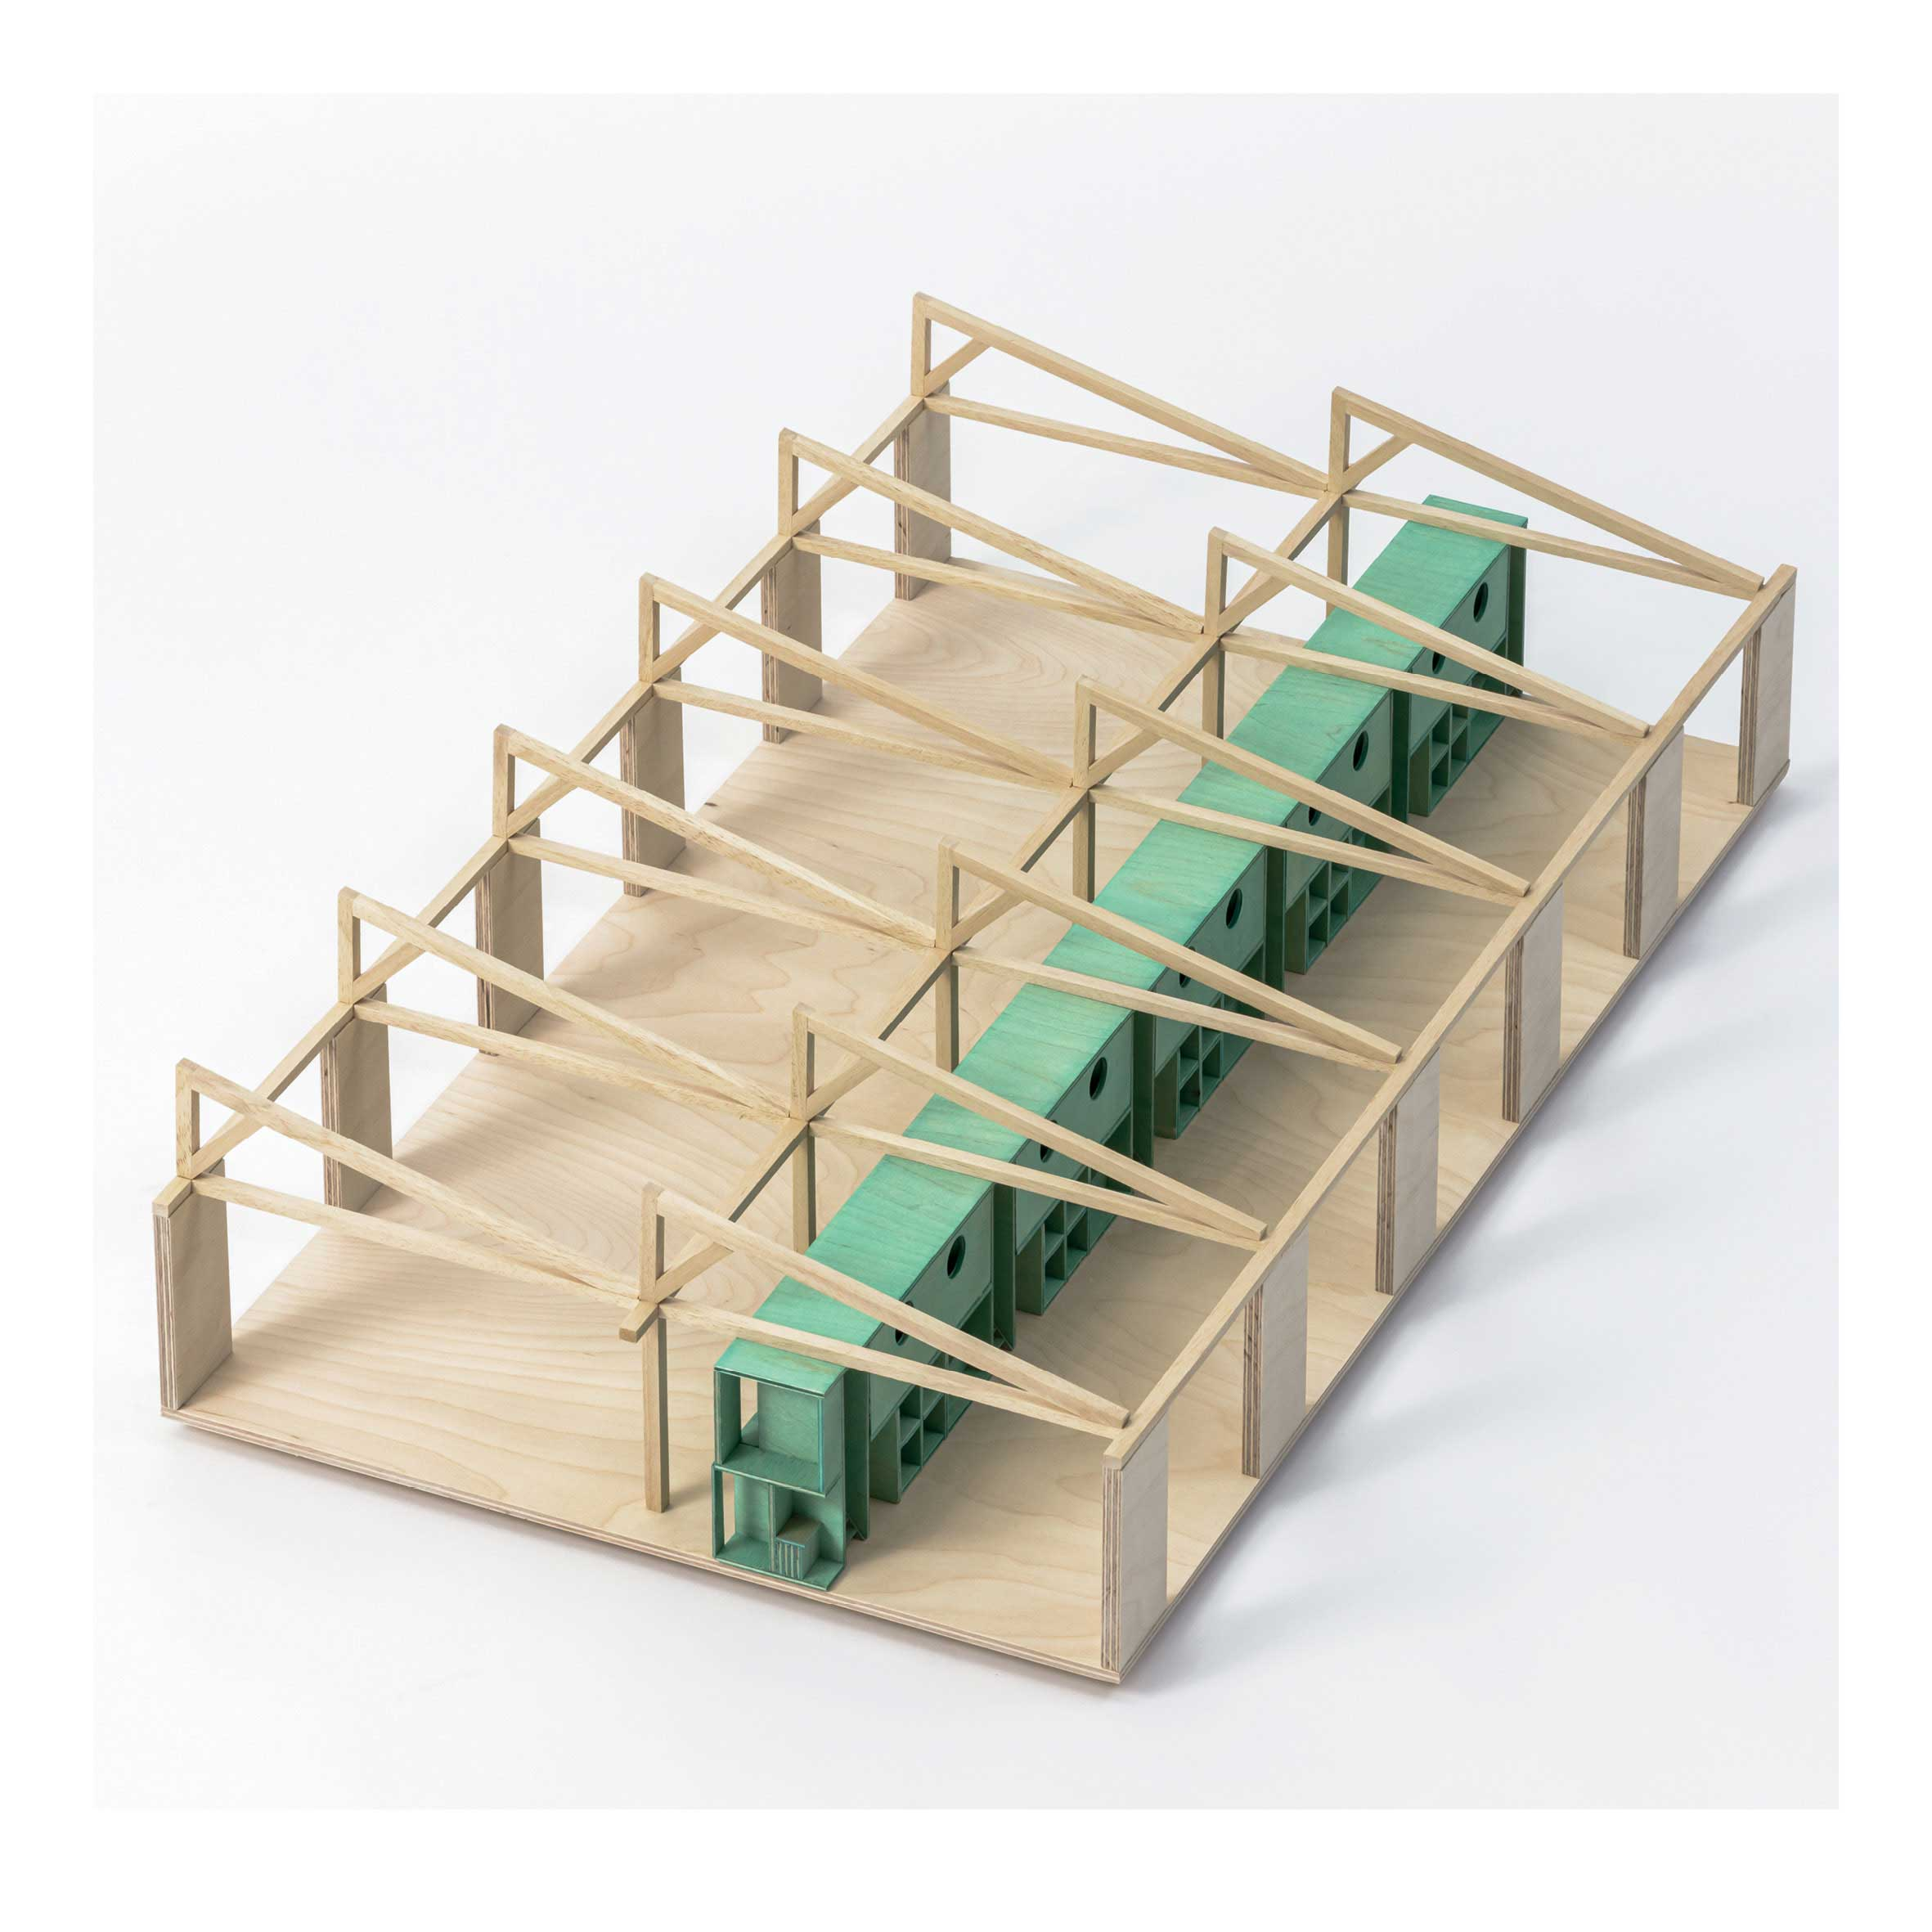 Model for a linear shed